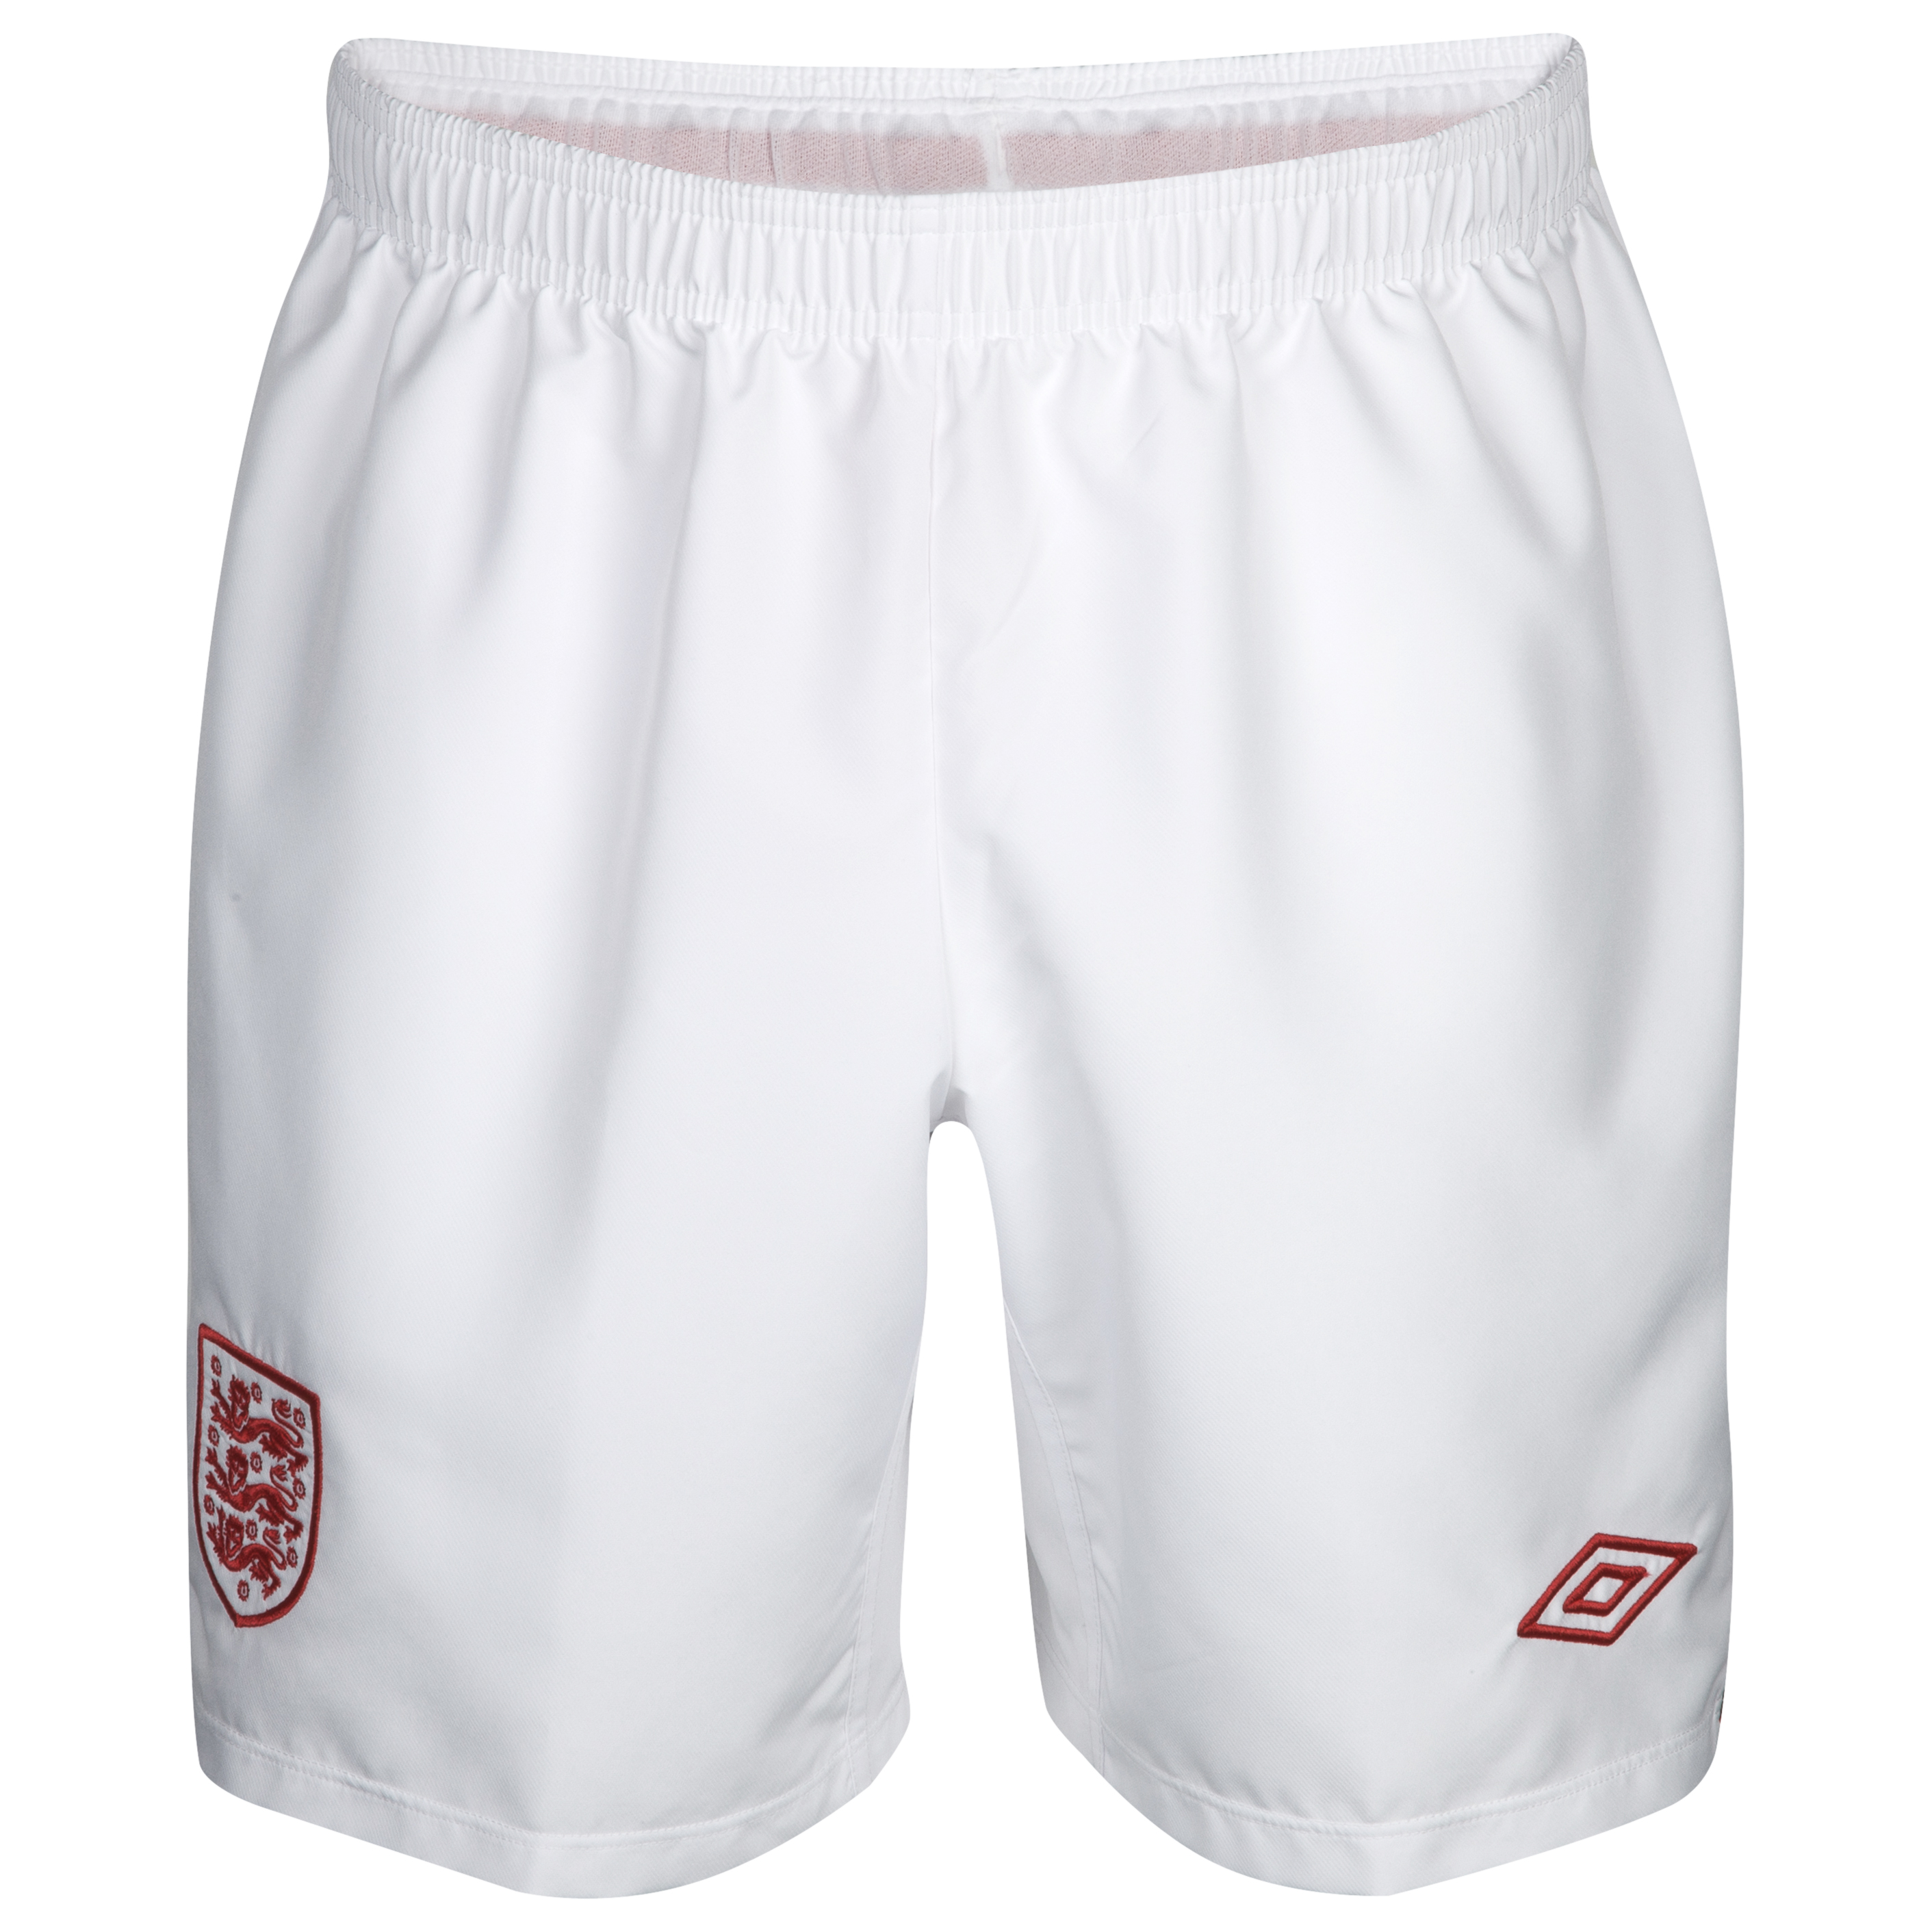 England Home Shorts 2012/13 - Boys